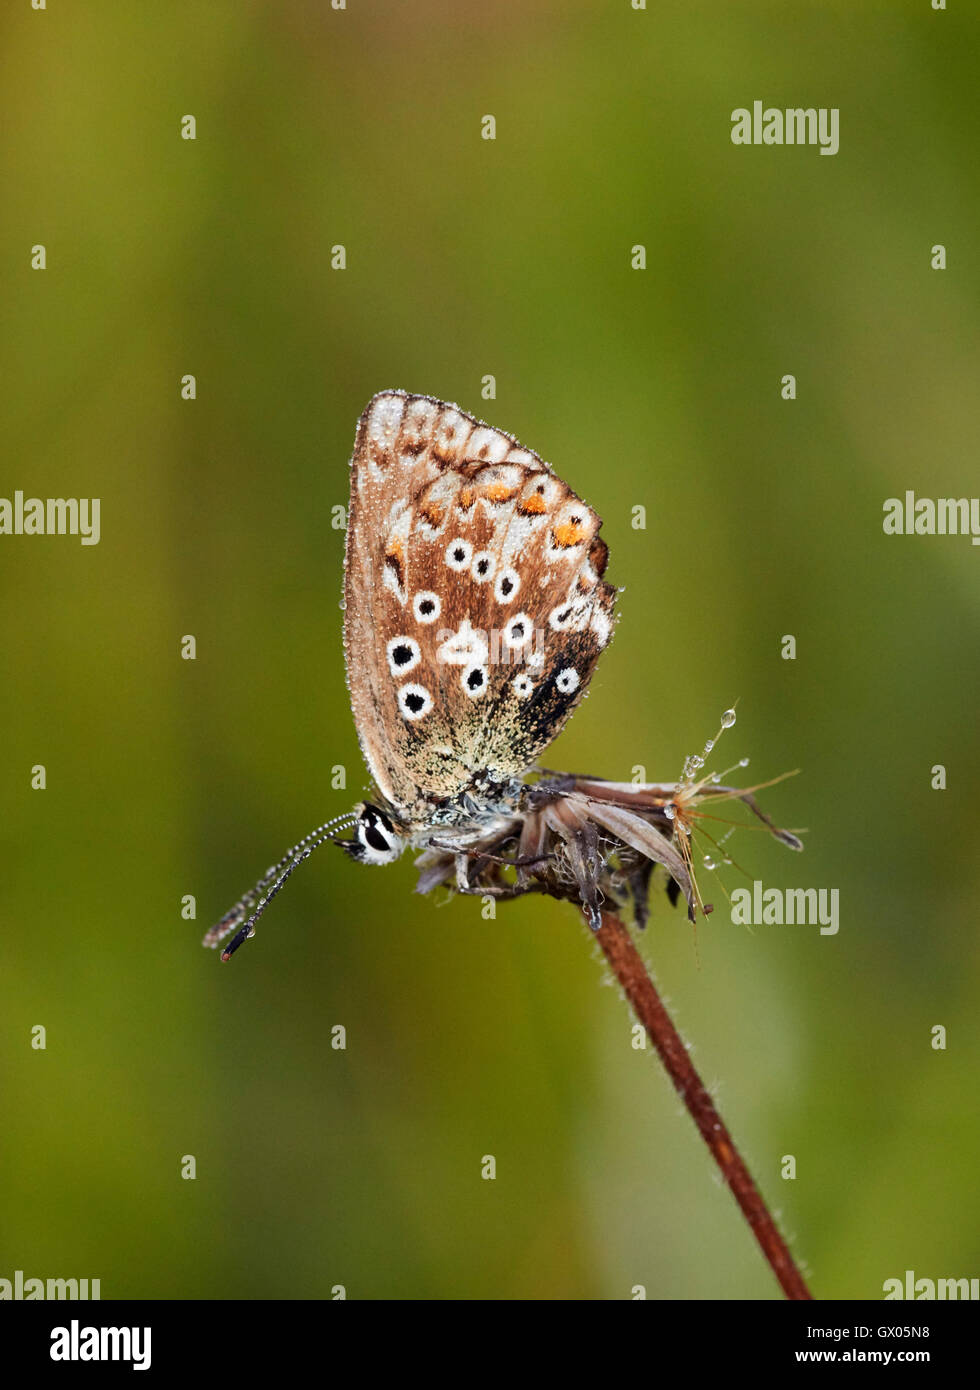 Dew-covered Adonis Blue female roosting at dawn. Denbies Hillside, Ranmore Common, Surrey, England. - Stock Image